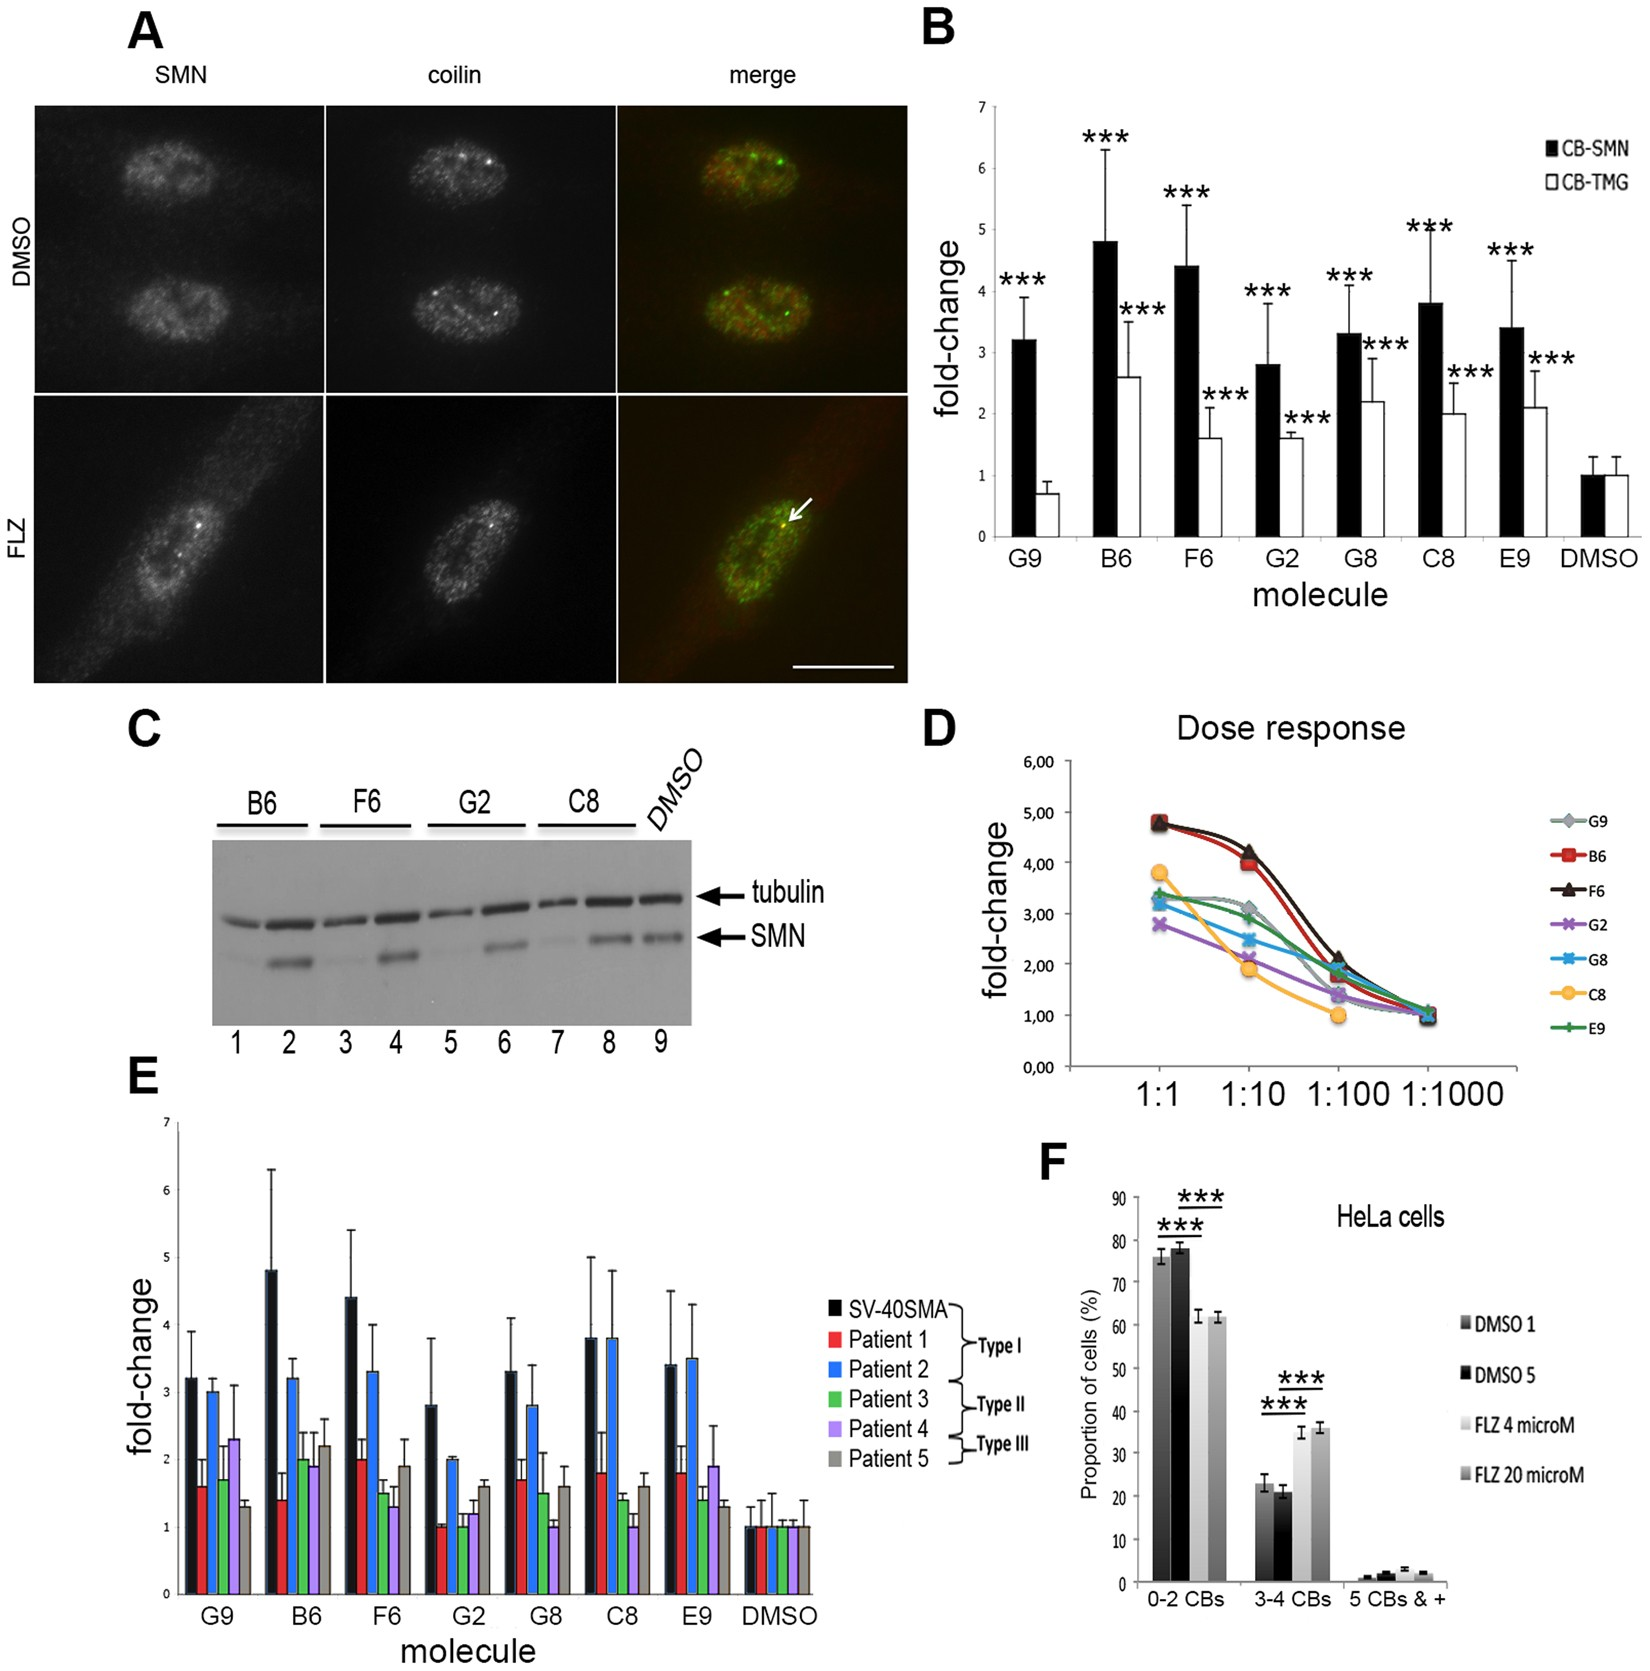 Small Molecule Flunarizine Increases Smn Protein In Nuclear Cajal Counter Using 7 Segment Display Public Circuit Online Bodies And Motor Function A Mouse Model Of Spinal Muscular Atrophy Scientific Reports